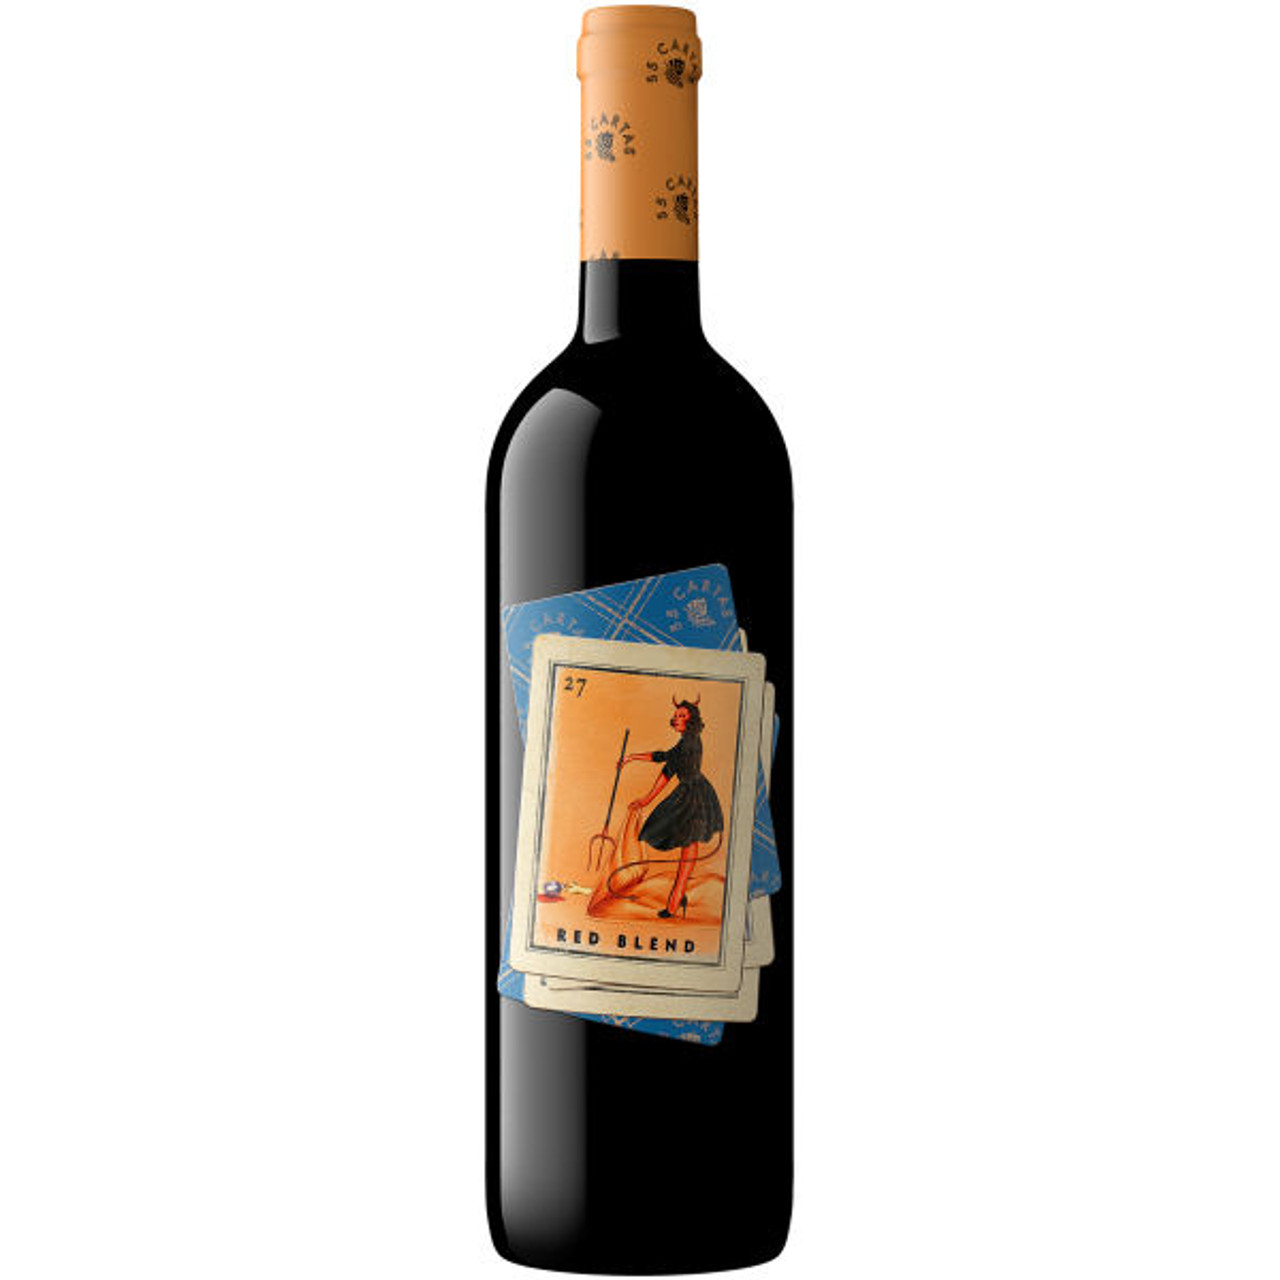 55 Cartas California Red Blend